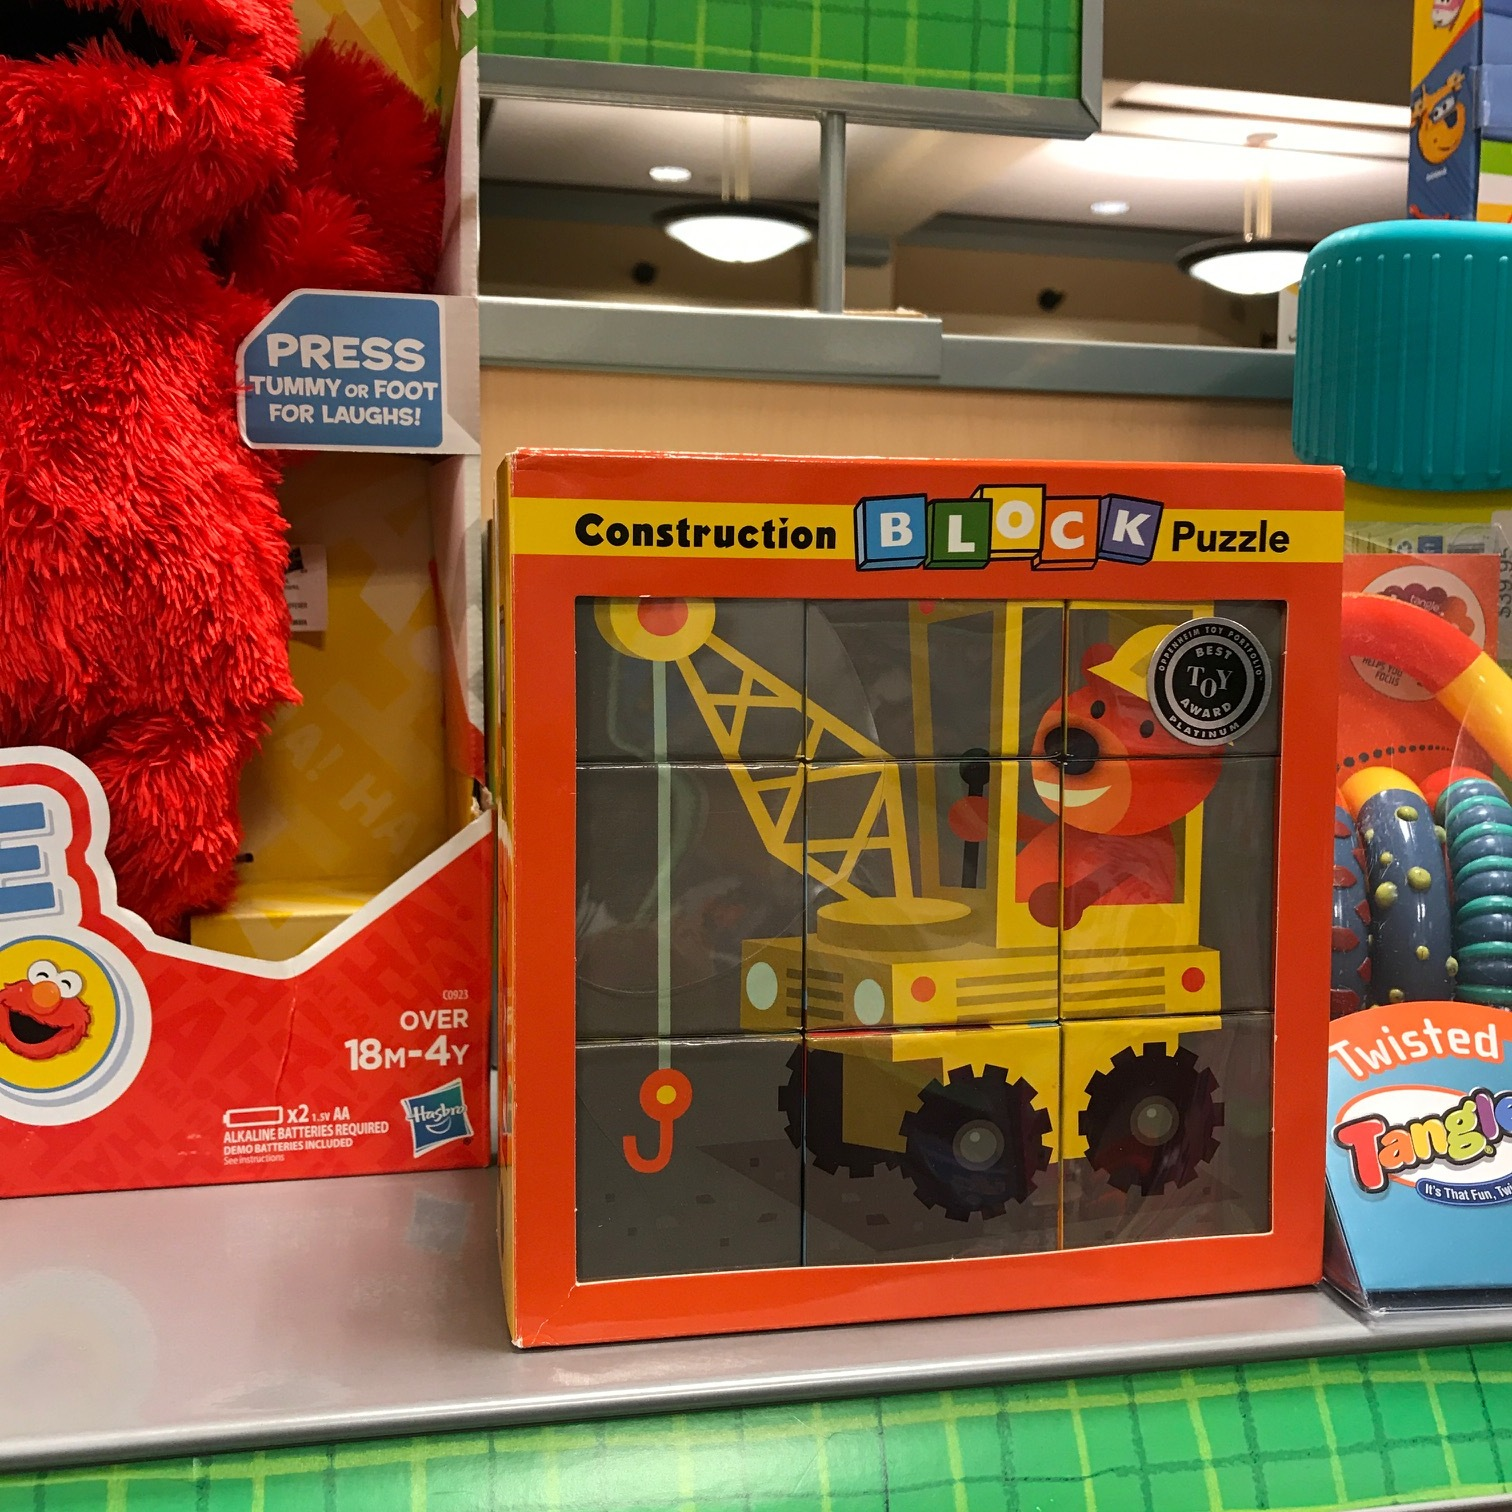 I did this block puzzle for Mud Puppy a few years ago. Nice to see it's still around, and right next to Elmo.